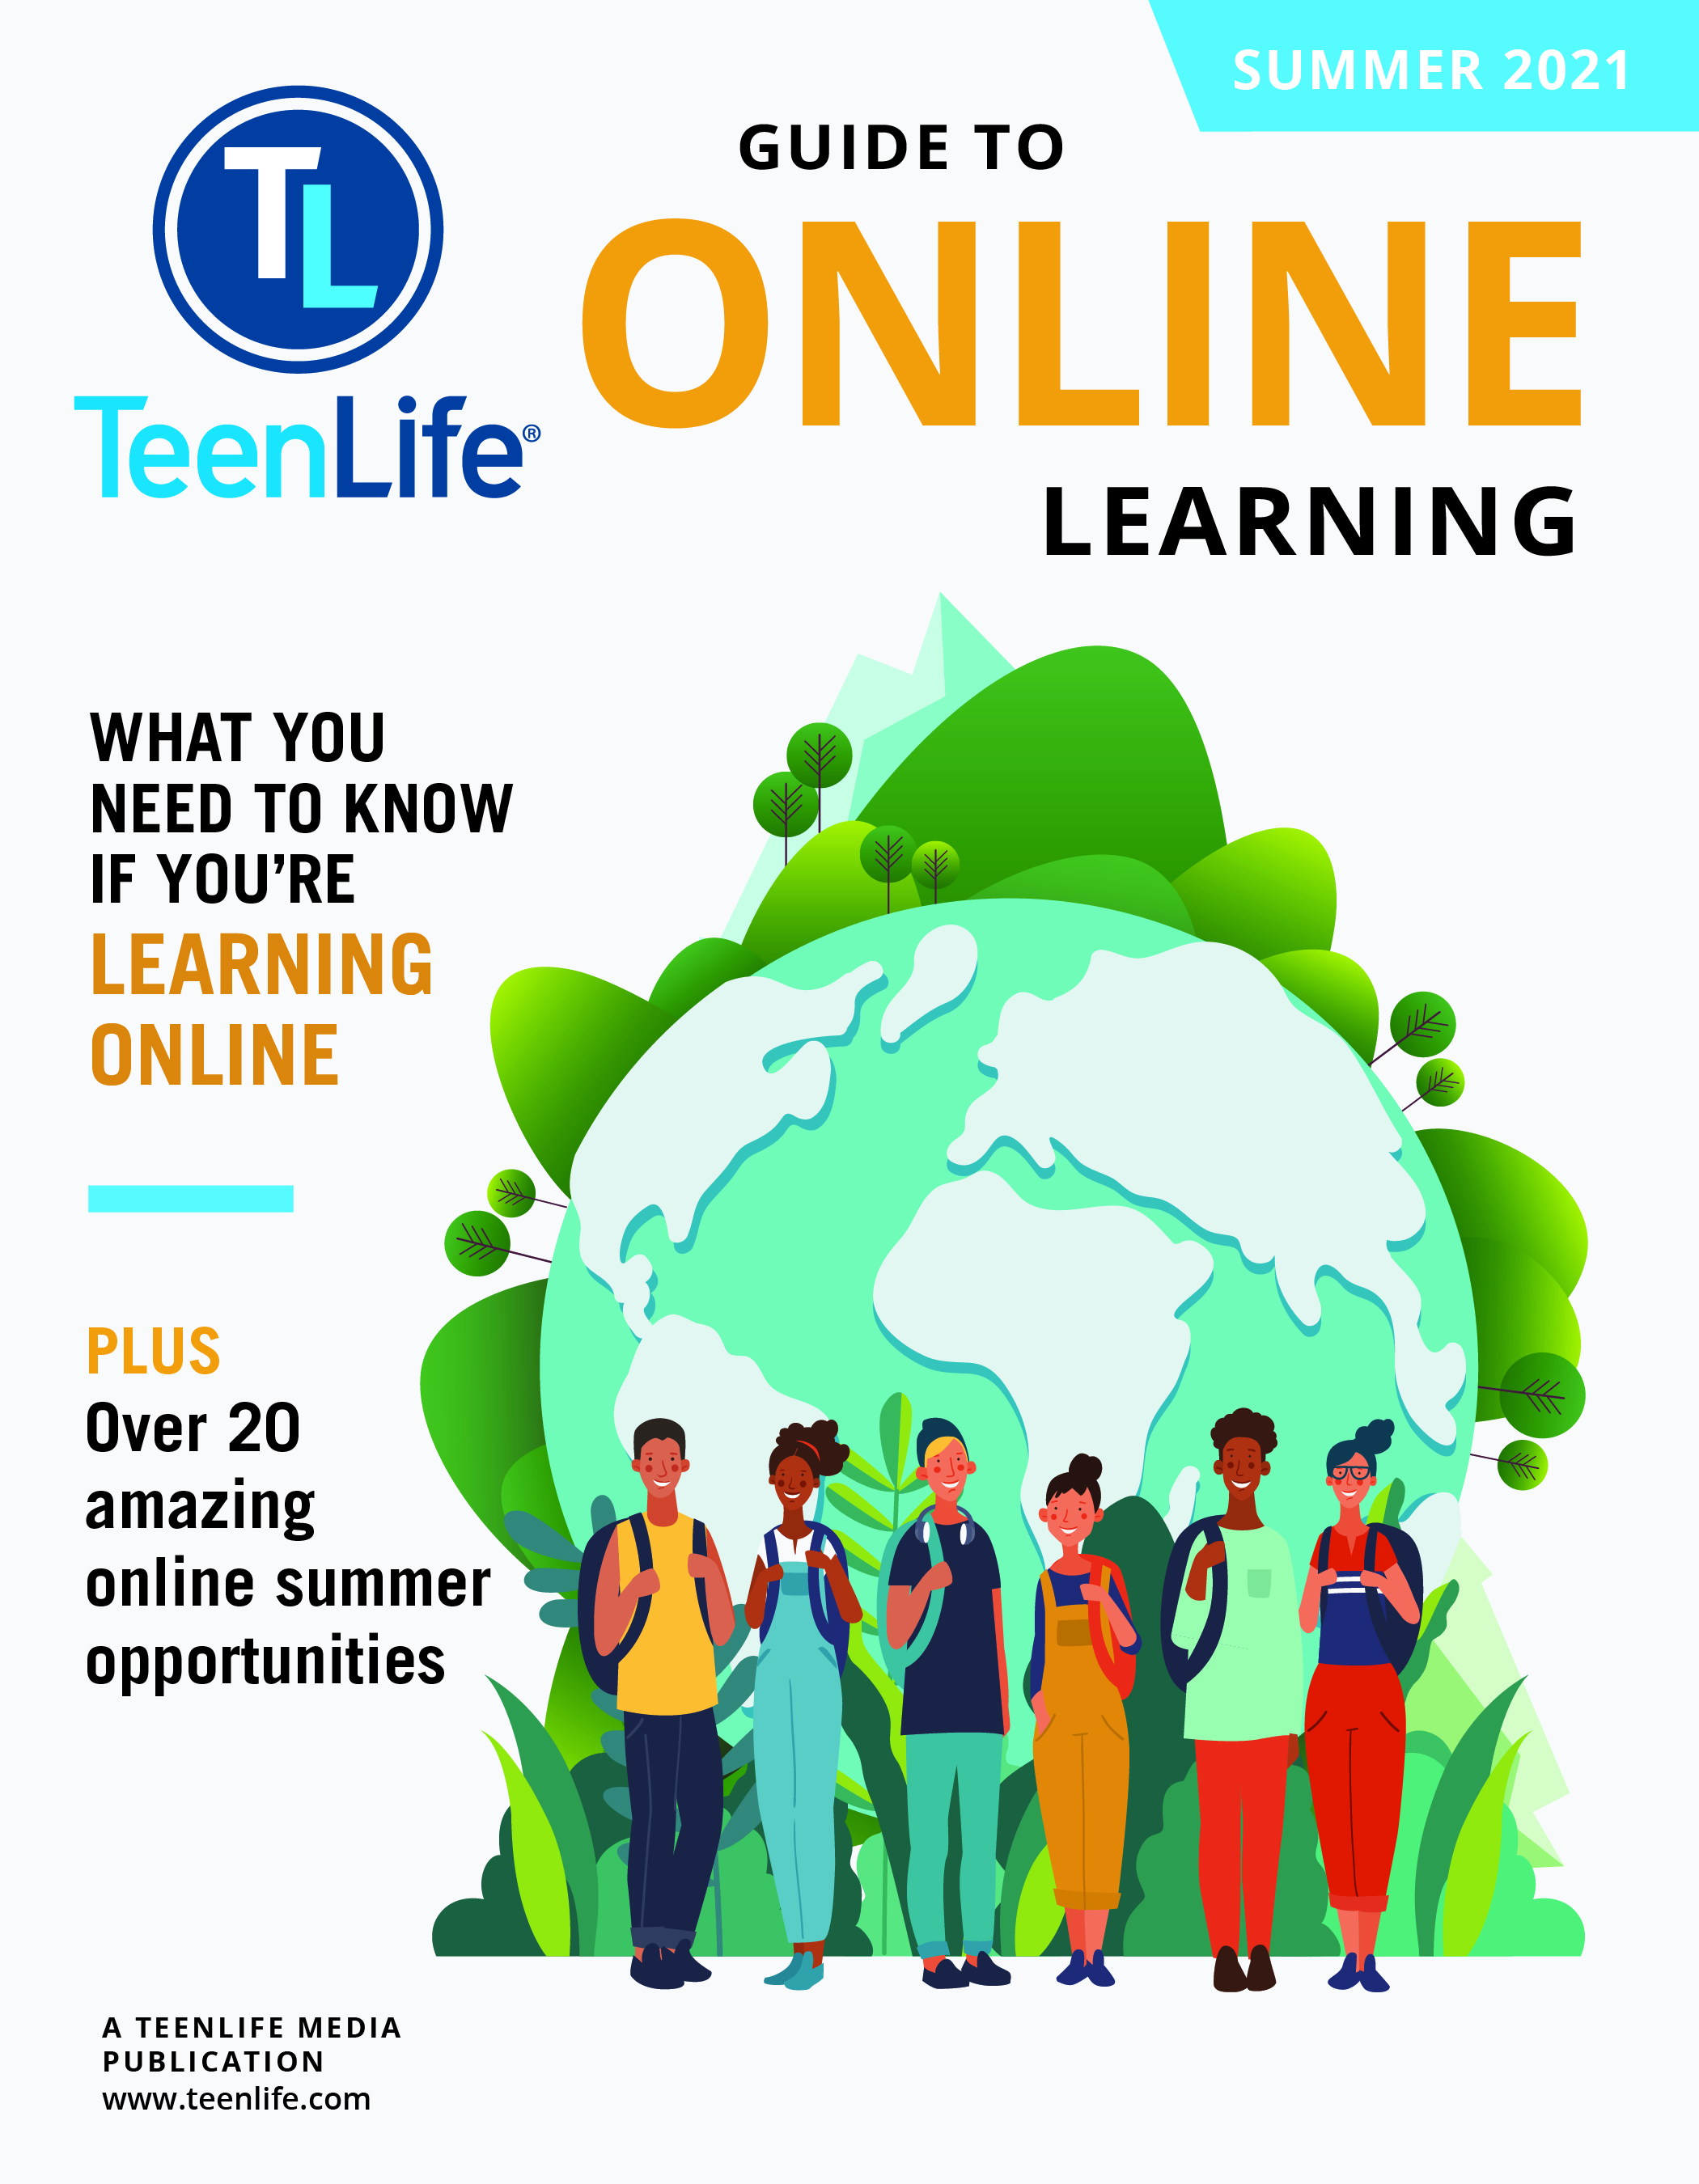 Guide to Online Learning: Summer 2021